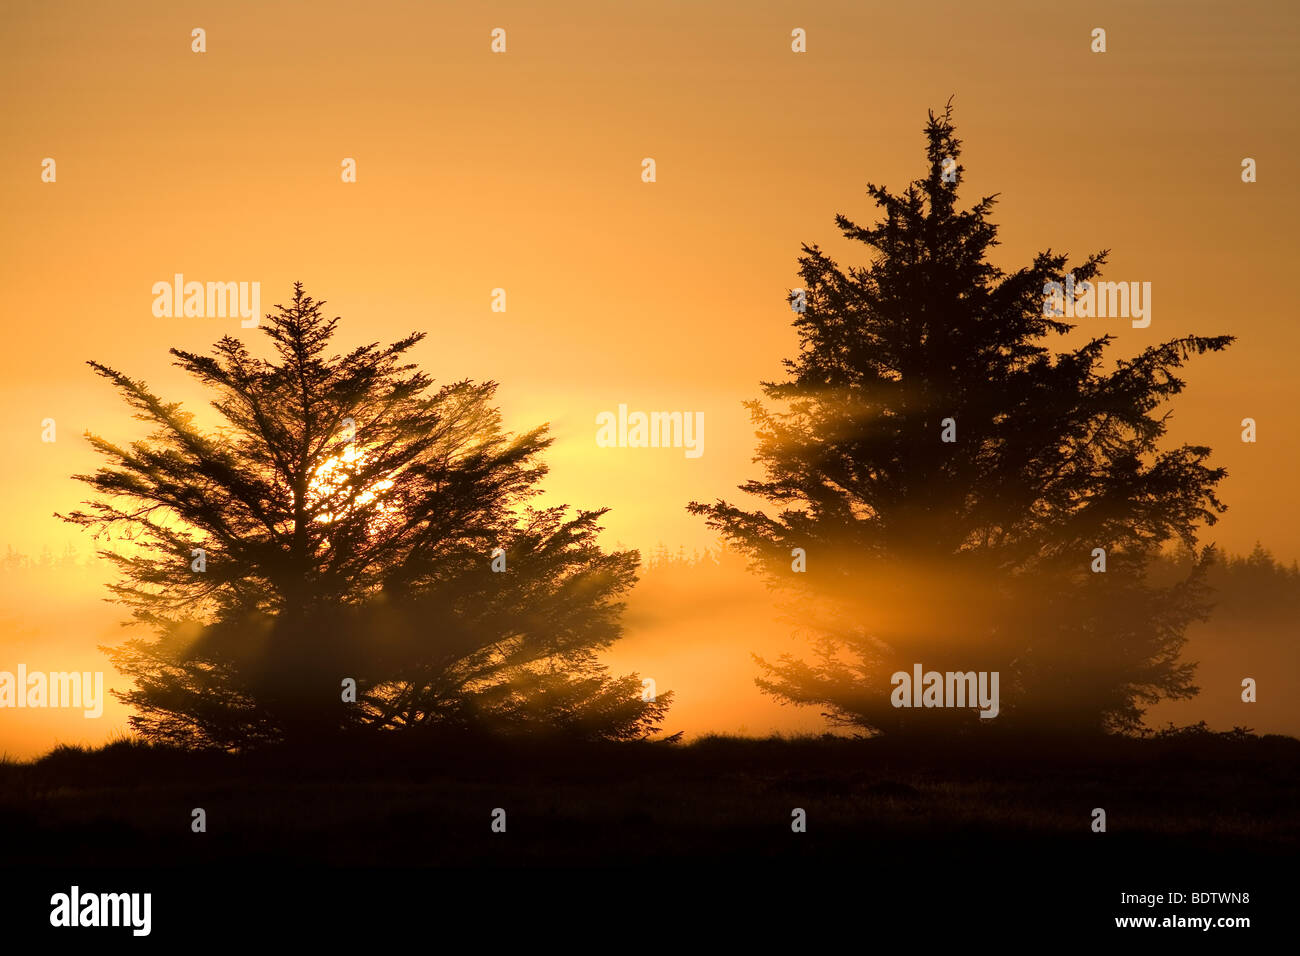 Rotfichten im Morgenlicht, Norway Spruce in the morning sun (Picea abies) - Stock Image